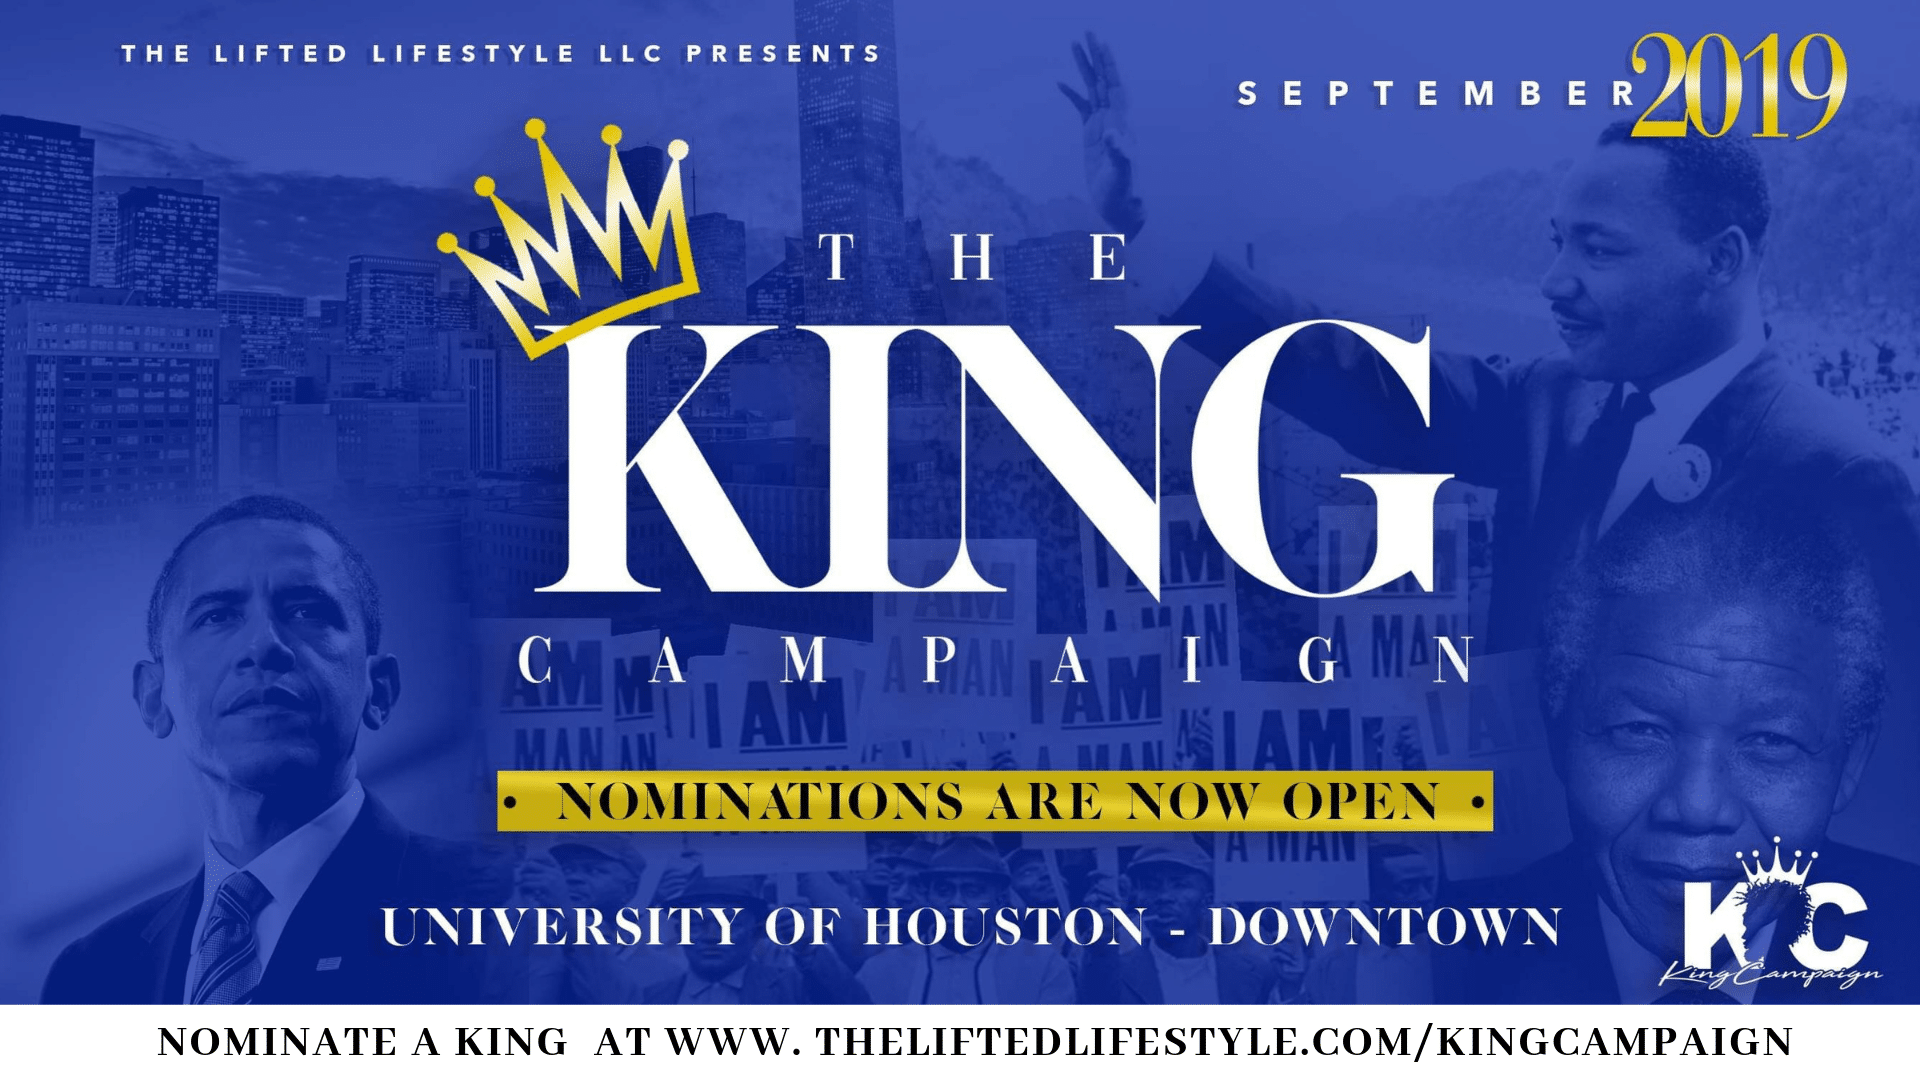 King Campaign 2019 Nomination Form